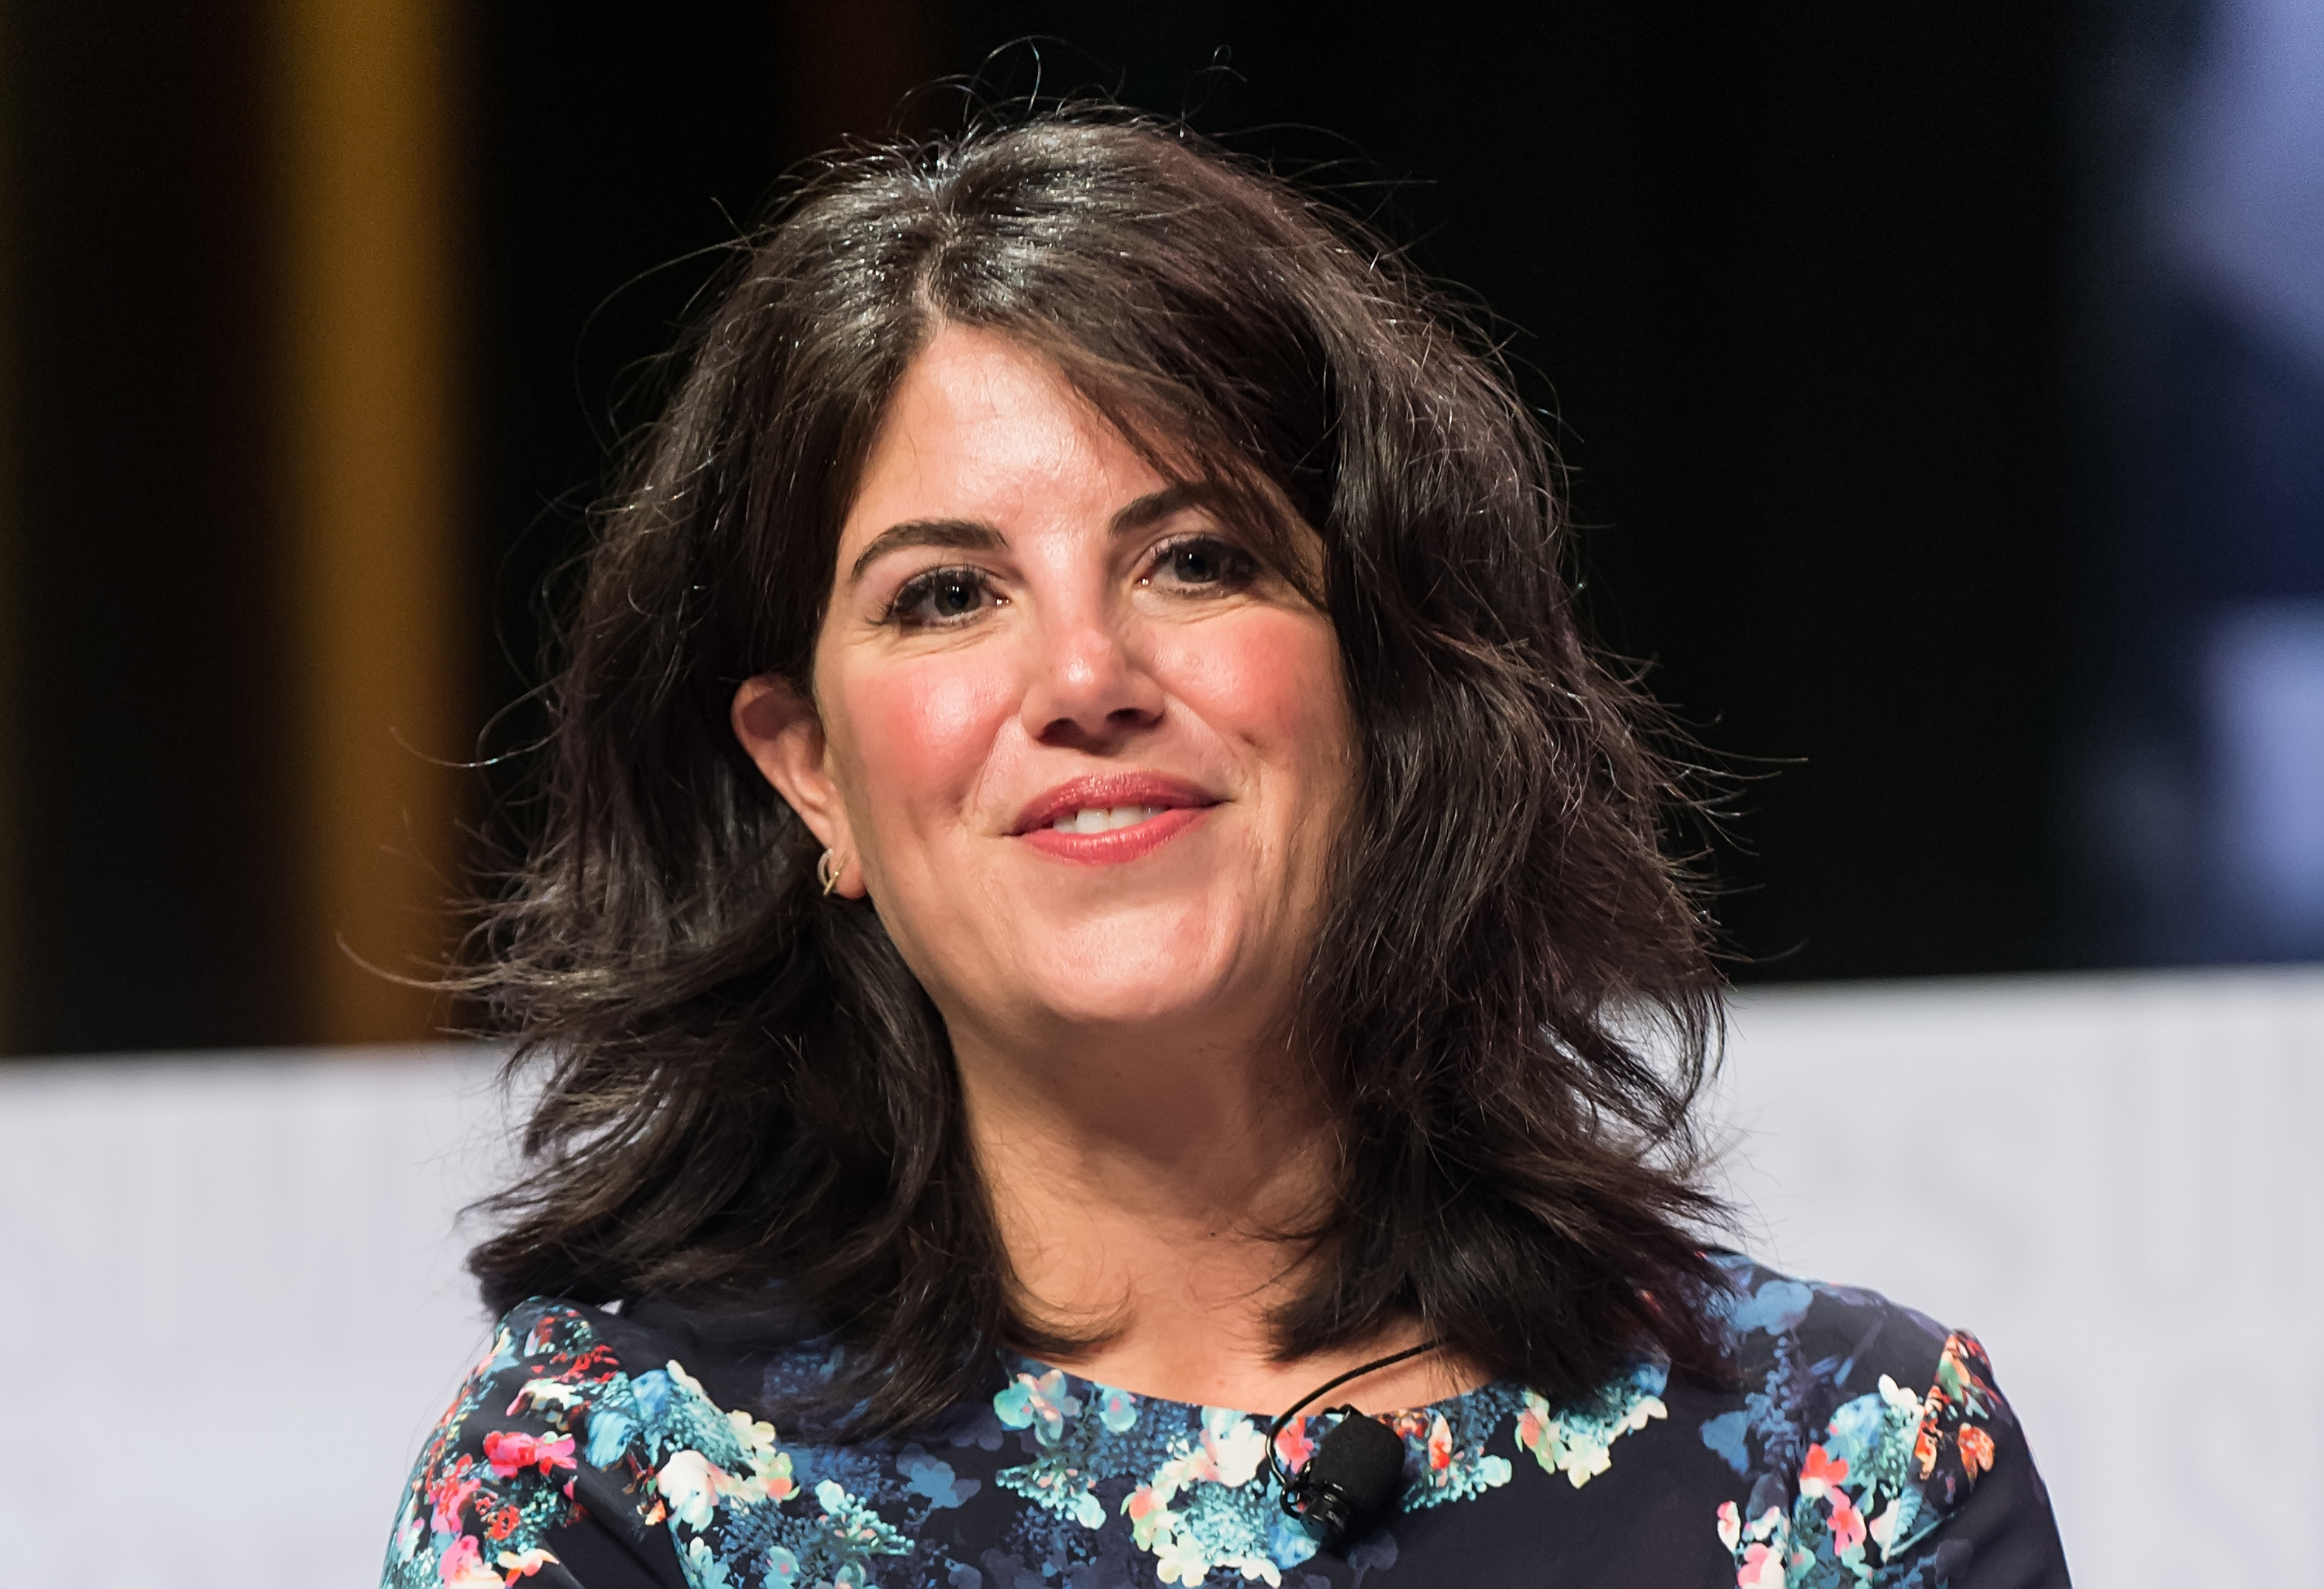 PHILADELPHIA, PA - OCTOBER 06:  Monica Lewinsky attends the Forbes Under 30 Summit at Pennsylvania Convention Center on October 6, 2015 in Philadelphia, Pennsylvania.  (Photo by Gilbert Carrasquillo/Getty Images)